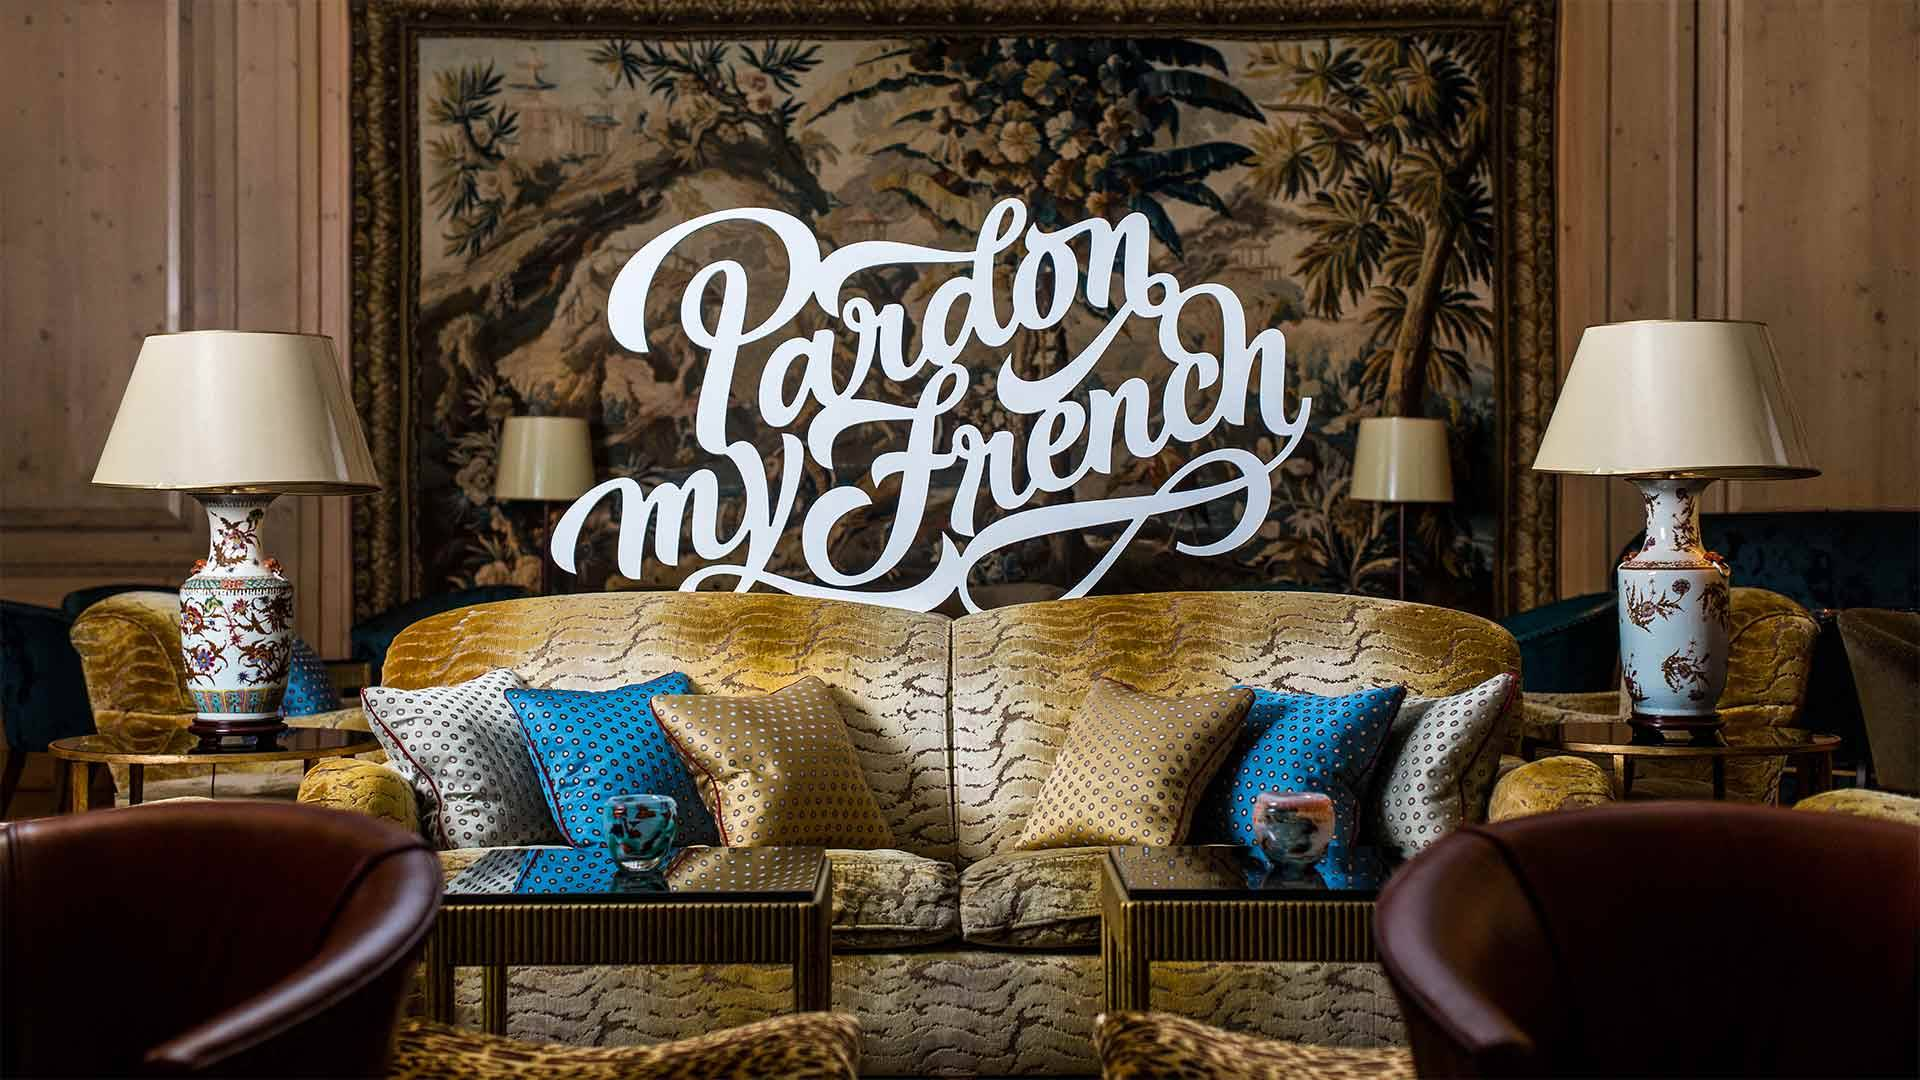 design-typographie-pardon-my-french